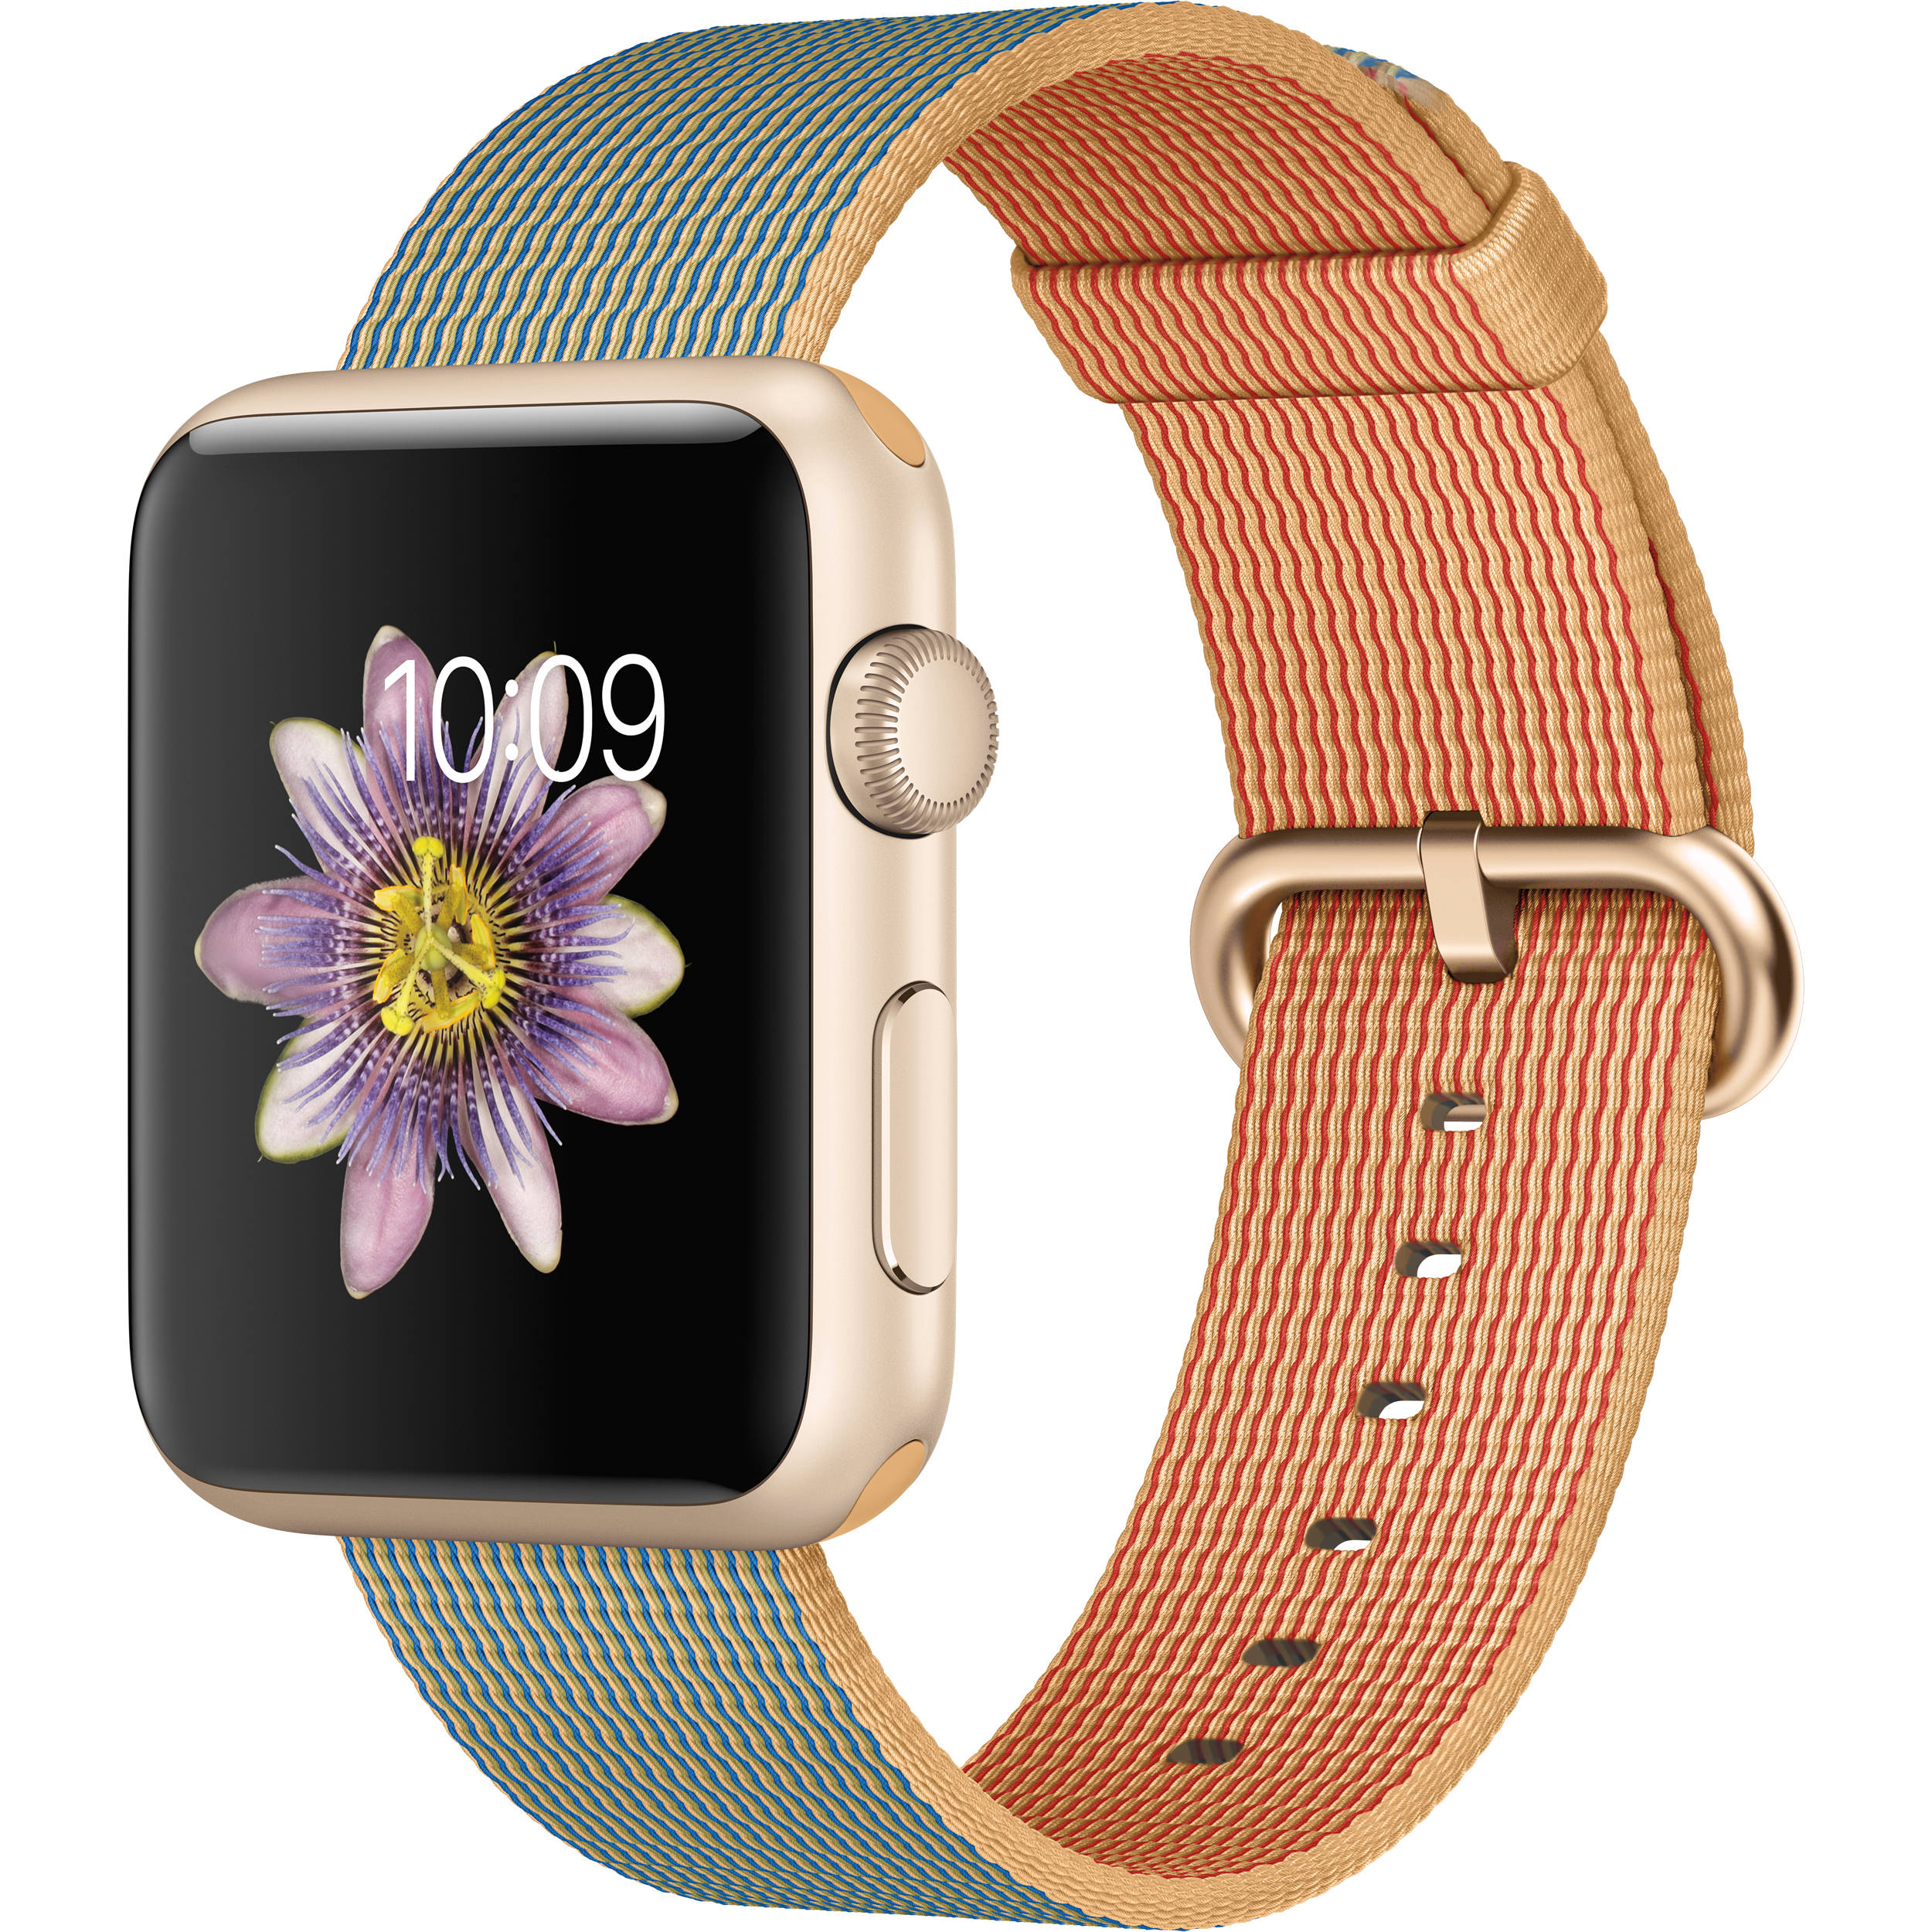 new product 2cee8 ab81a Apple Watch Sport 42mm Smartwatch (2015, Gold Aluminum Case, Gold/Royal  Blue Woven Nylon Band)